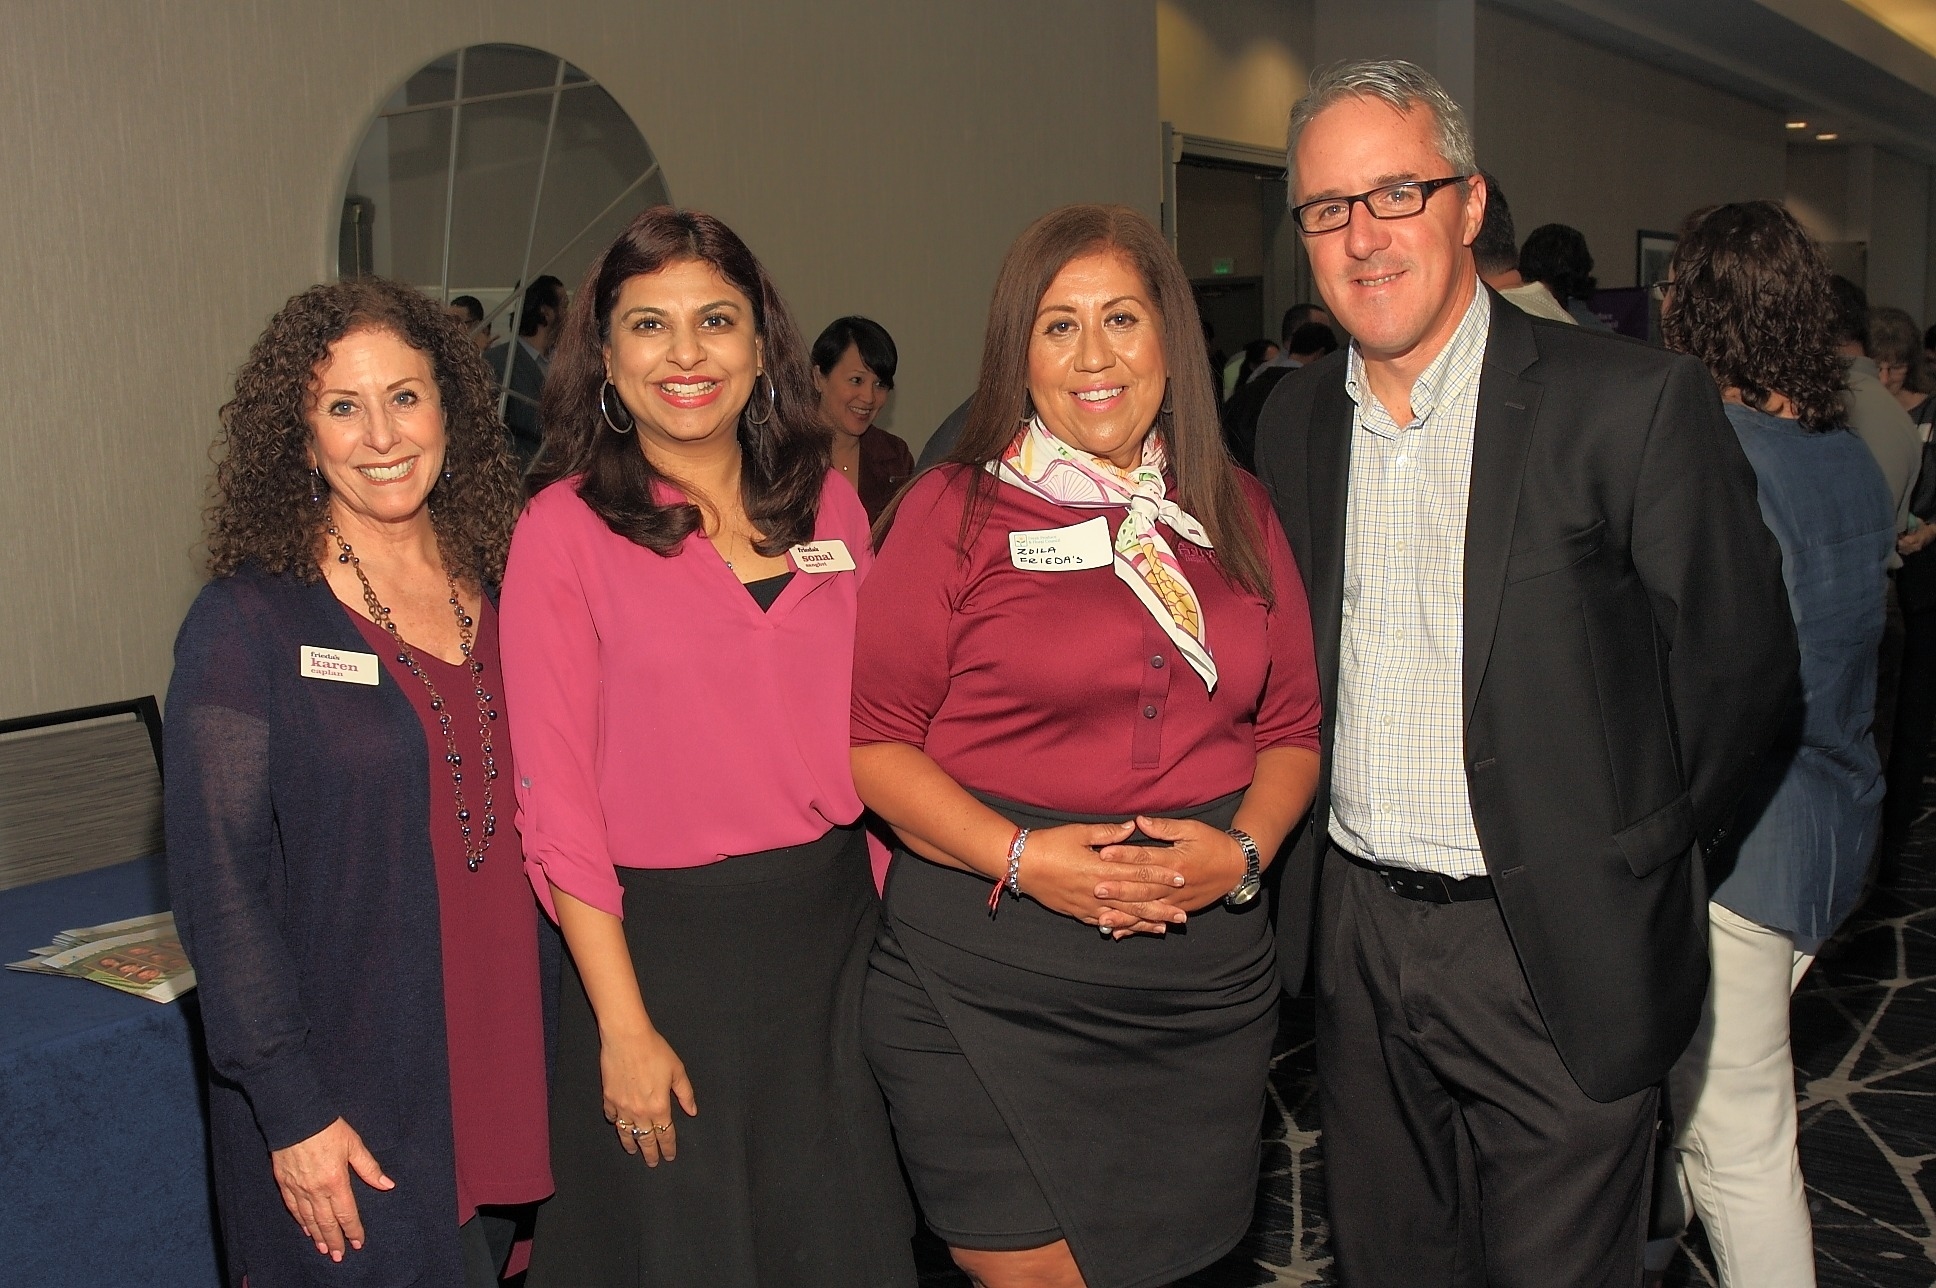 aren Caplan, Sonal Sanghvi and Zoila Medina of Frieda's Inc. with Paul Kneeland of Gelson's Markets.